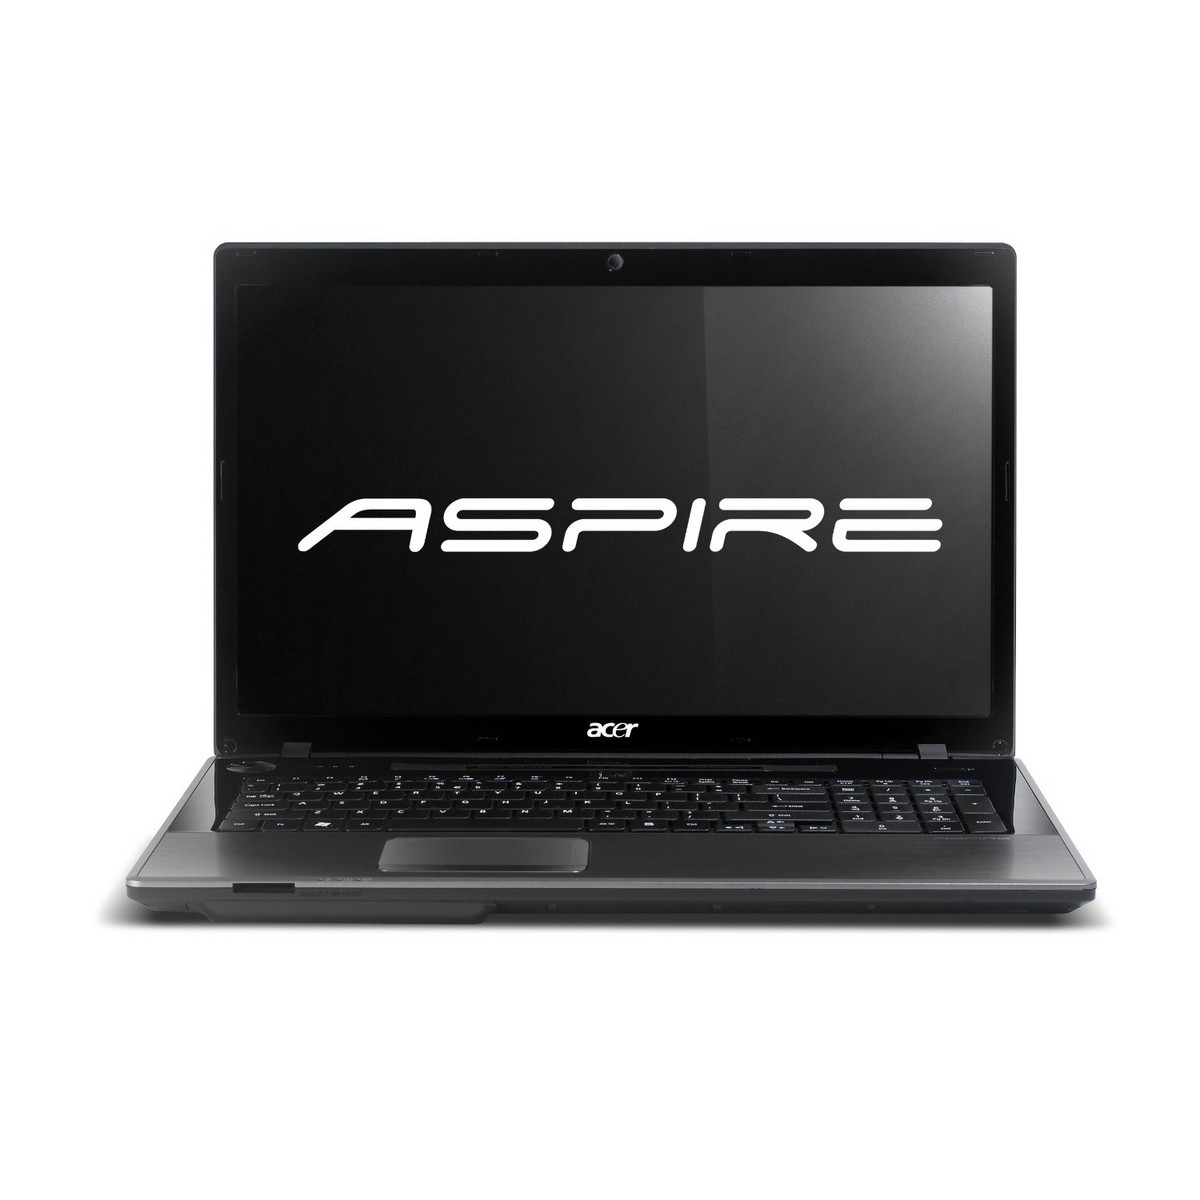 Acer Aspire 7745G Intel Graphics 64 Bit